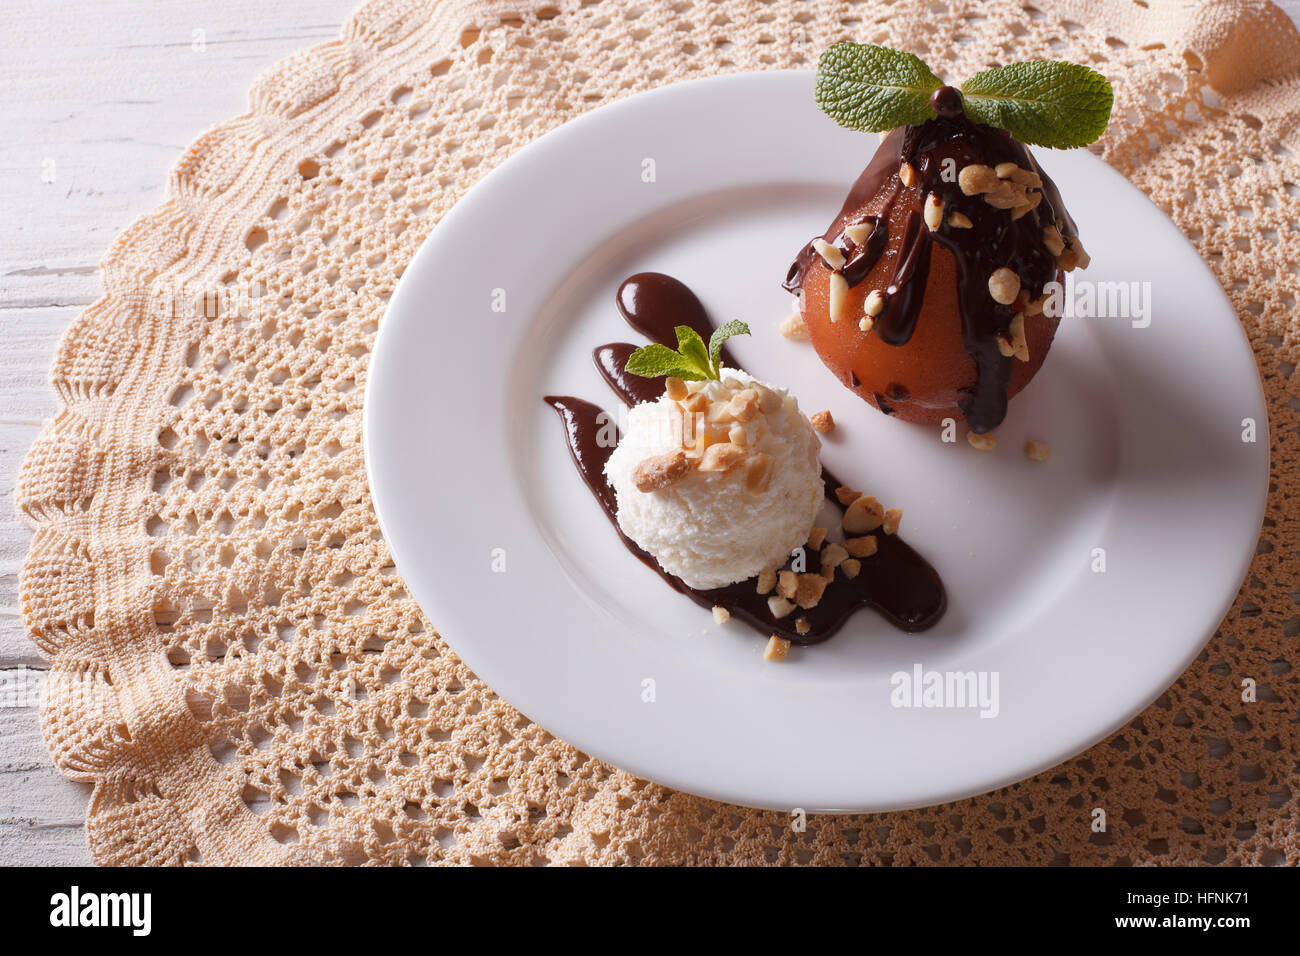 Delicious food: poached pear with chocolate and ice cream on a plate. top view horizontal - Stock Image